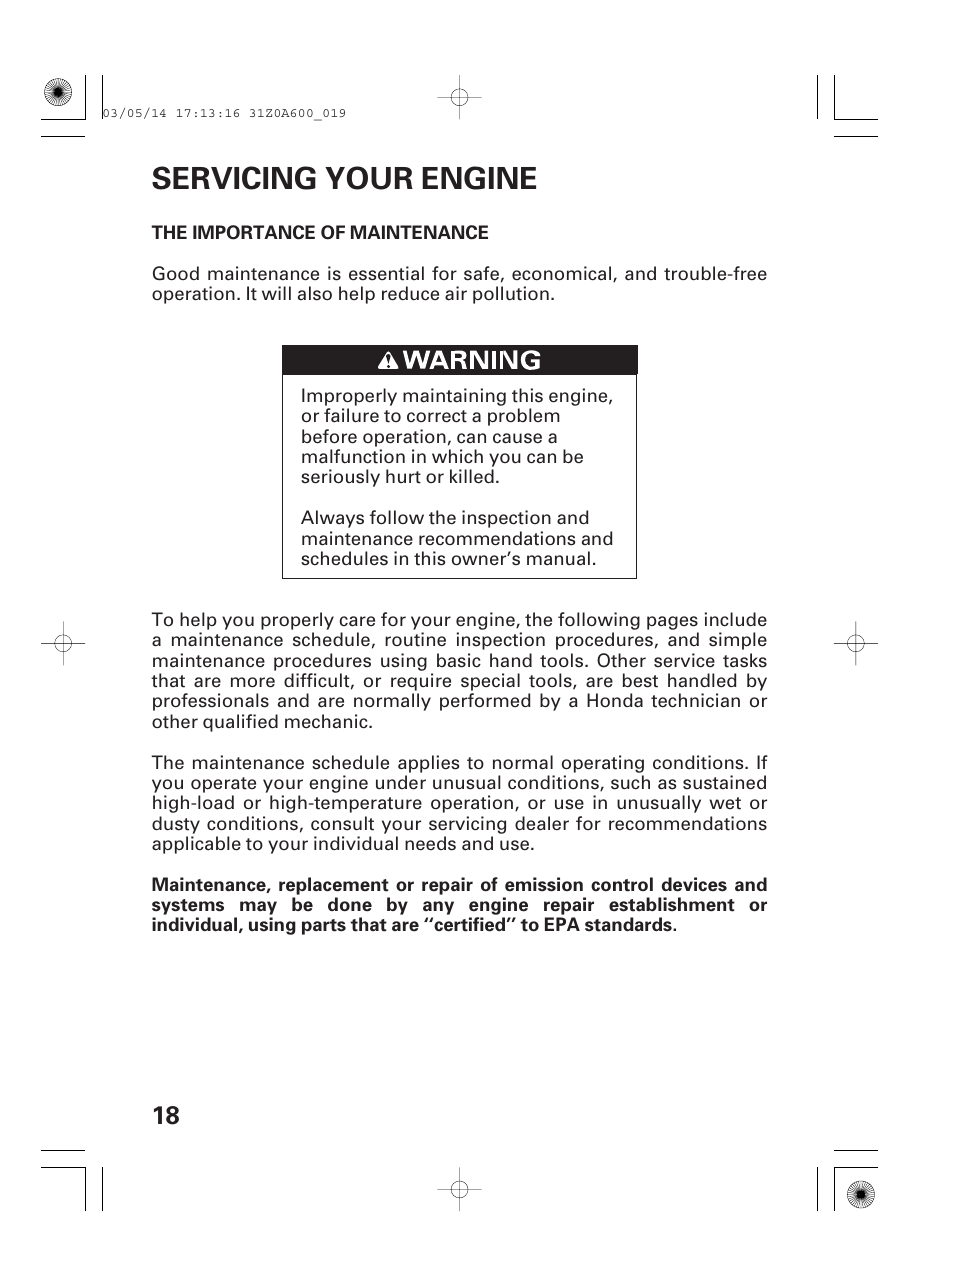 Servicing Your Engine The Importance Of Maintenance Honda Gxv530 User Manual Page 20 60